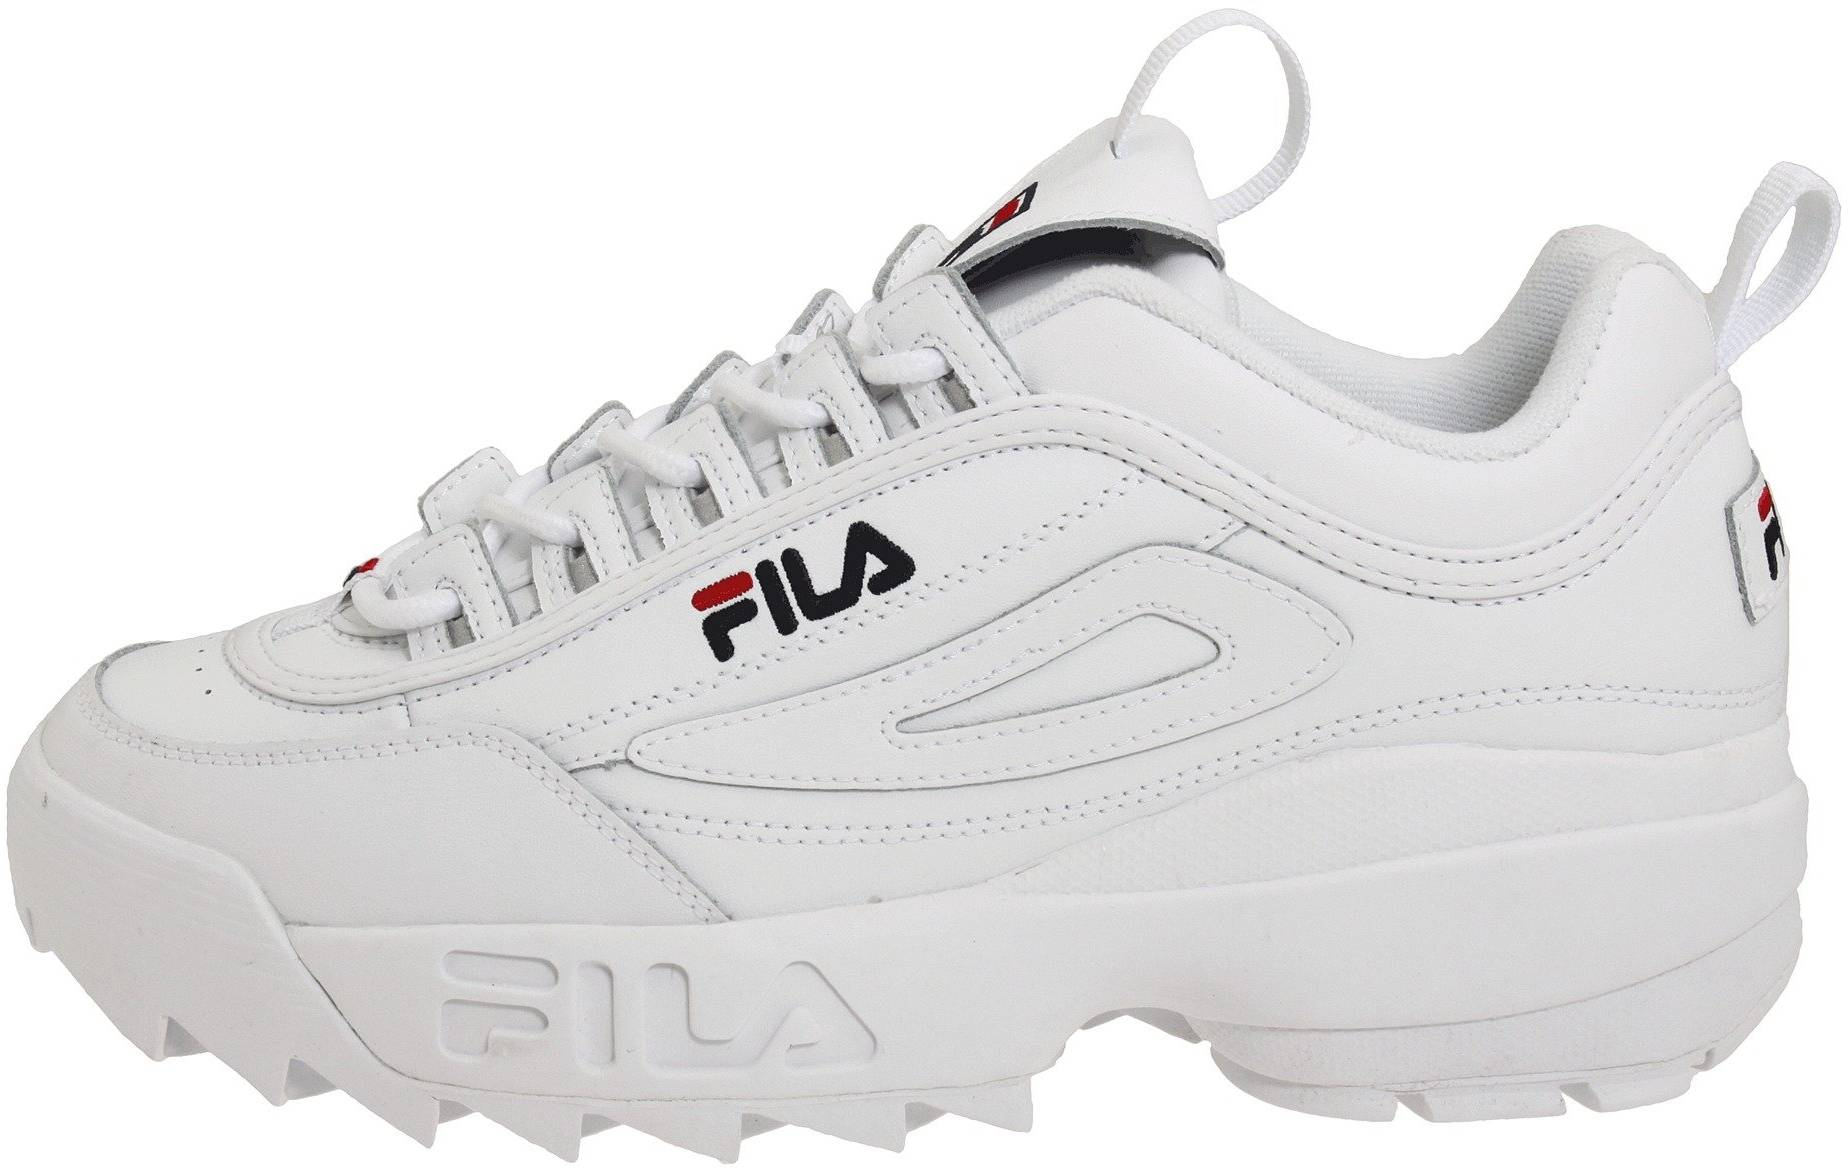 Only £38 + Review of Fila Disruptor 2